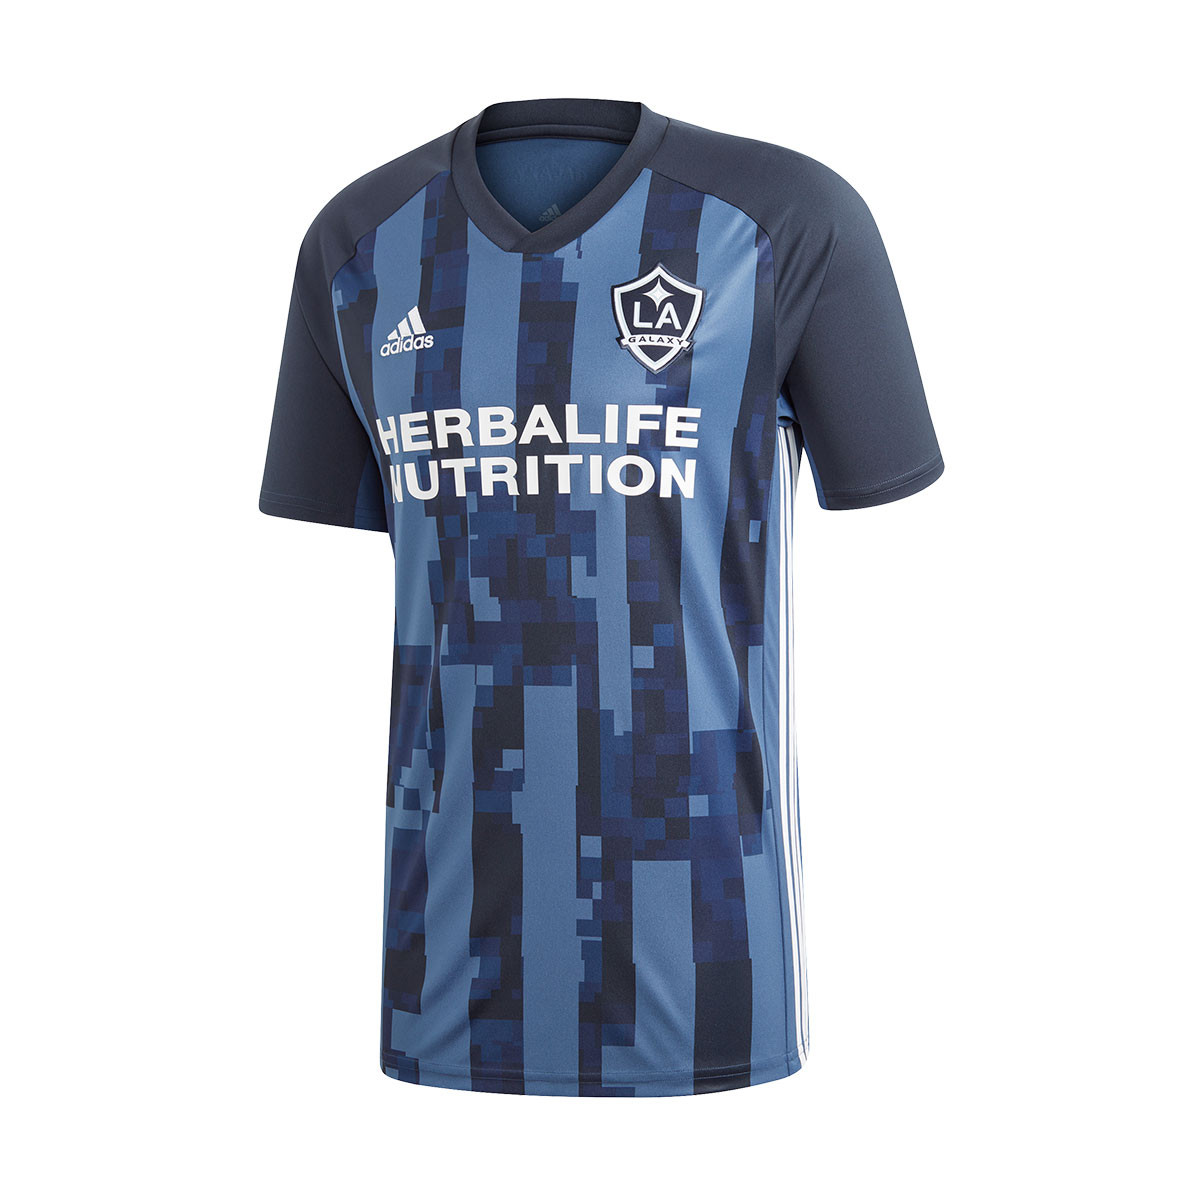 664c00cd99d4a Playera adidas LA Galaxy Segunda Equipación 2018-2019 Night navy - Tienda  de fútbol Fútbol Emotion